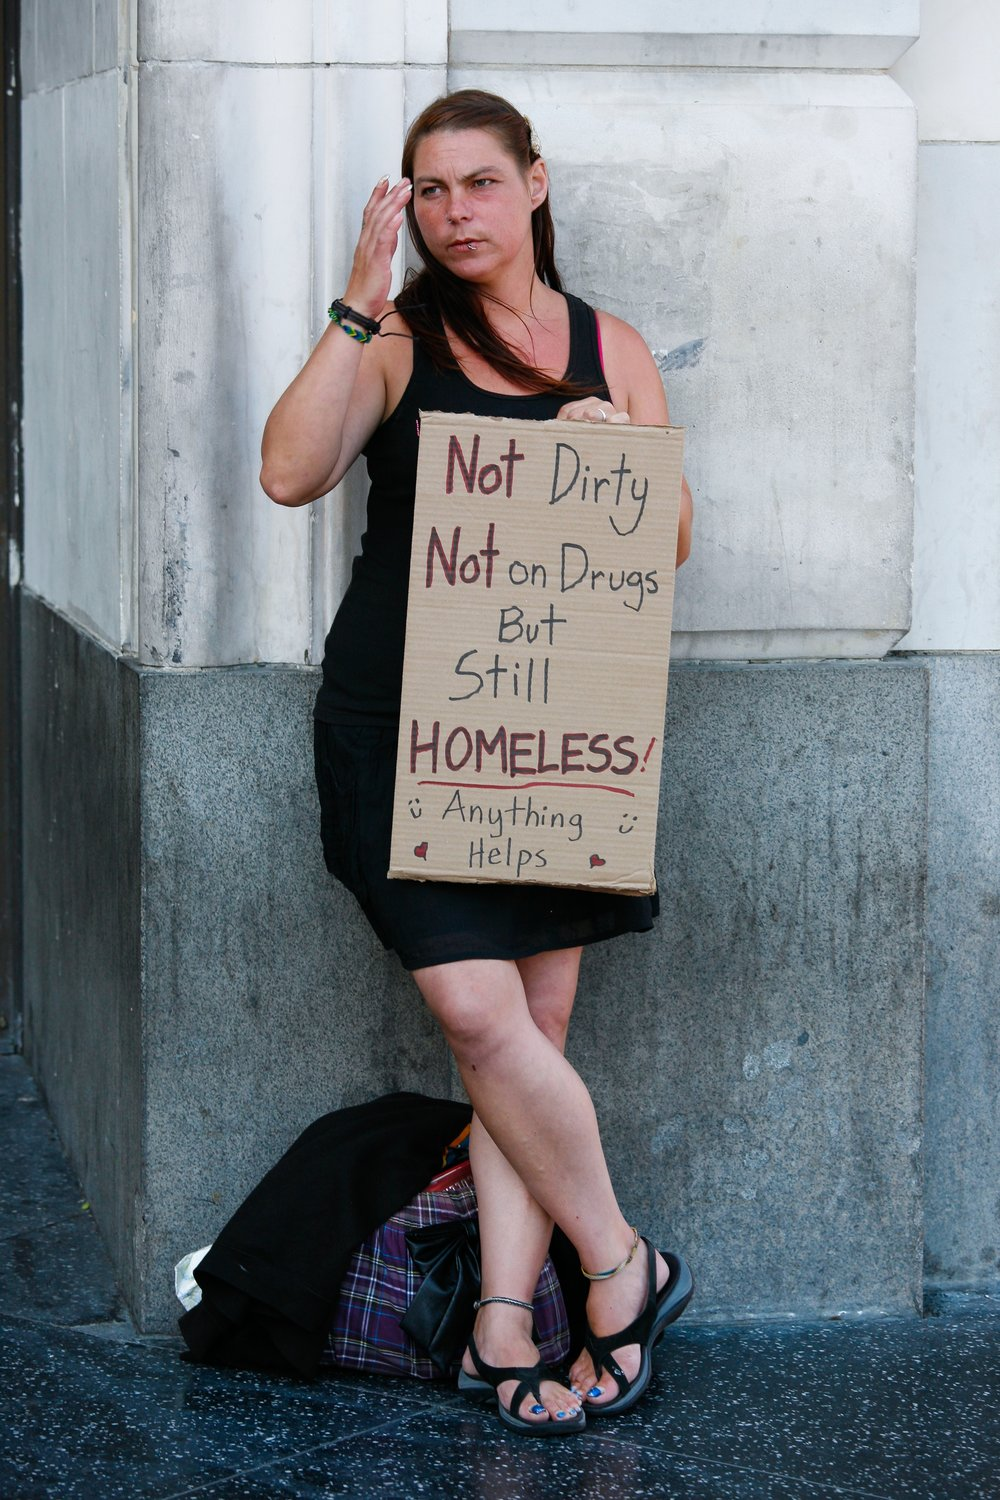 Homeless_female_holding_up_sign_(7617876912).jpg